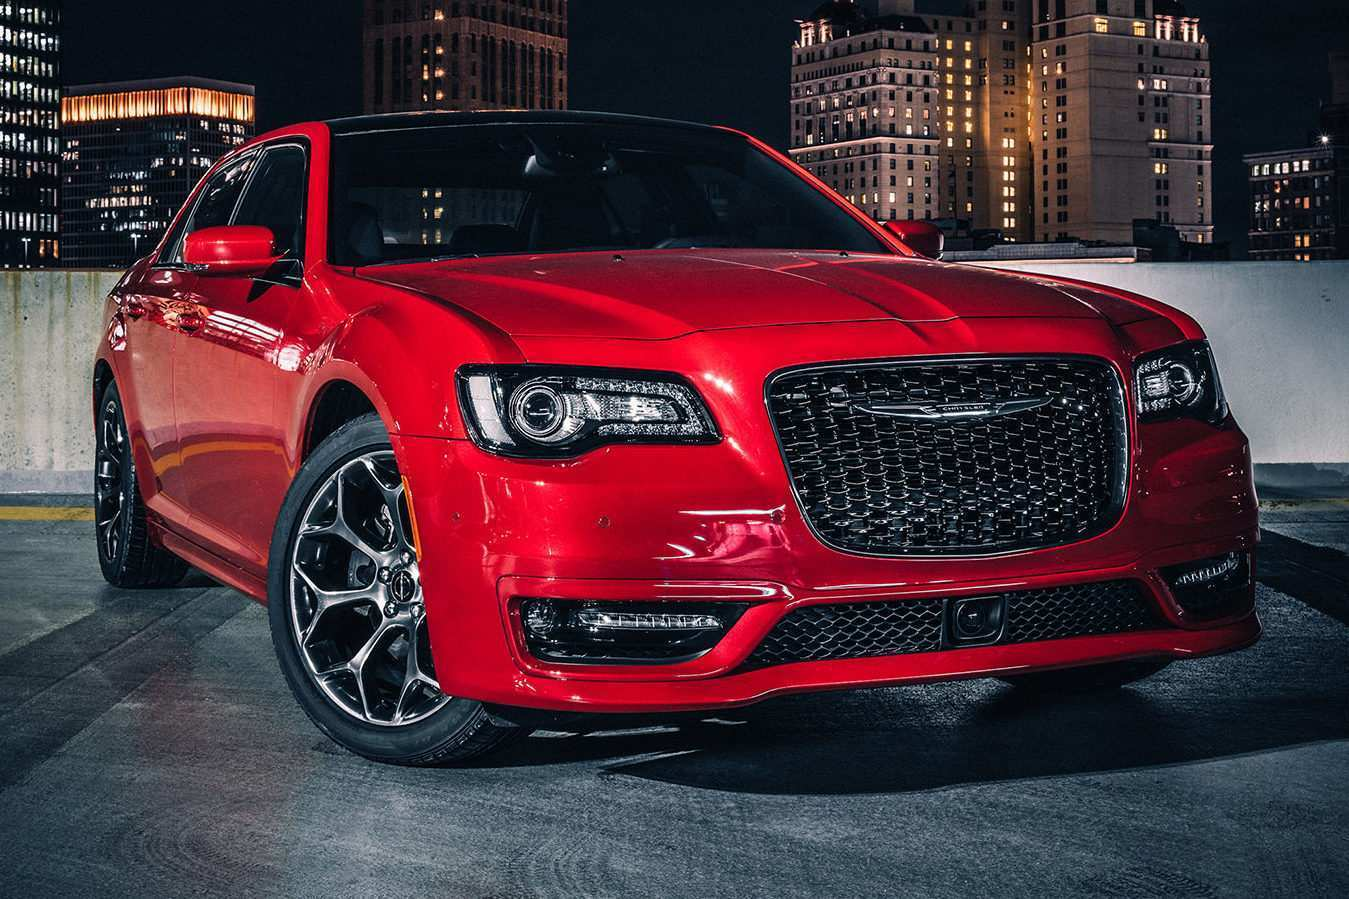 46 New 2019 Chrysler Vehicles Engine for 2019 Chrysler Vehicles